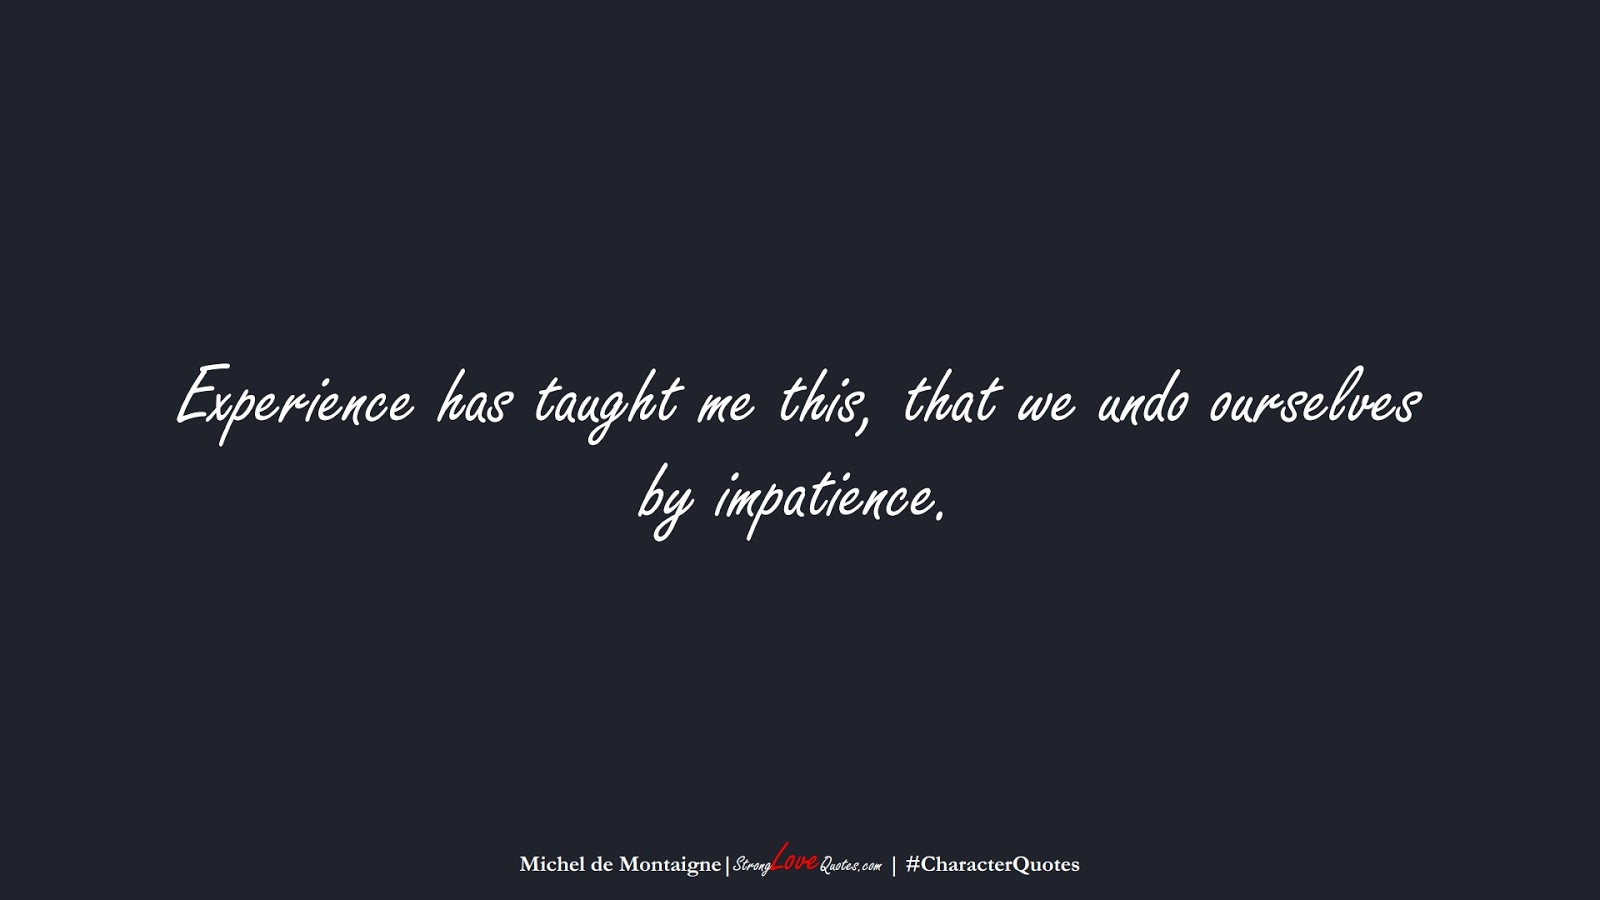 Experience has taught me this, that we undo ourselves by impatience. (Michel de Montaigne);  #CharacterQuotes